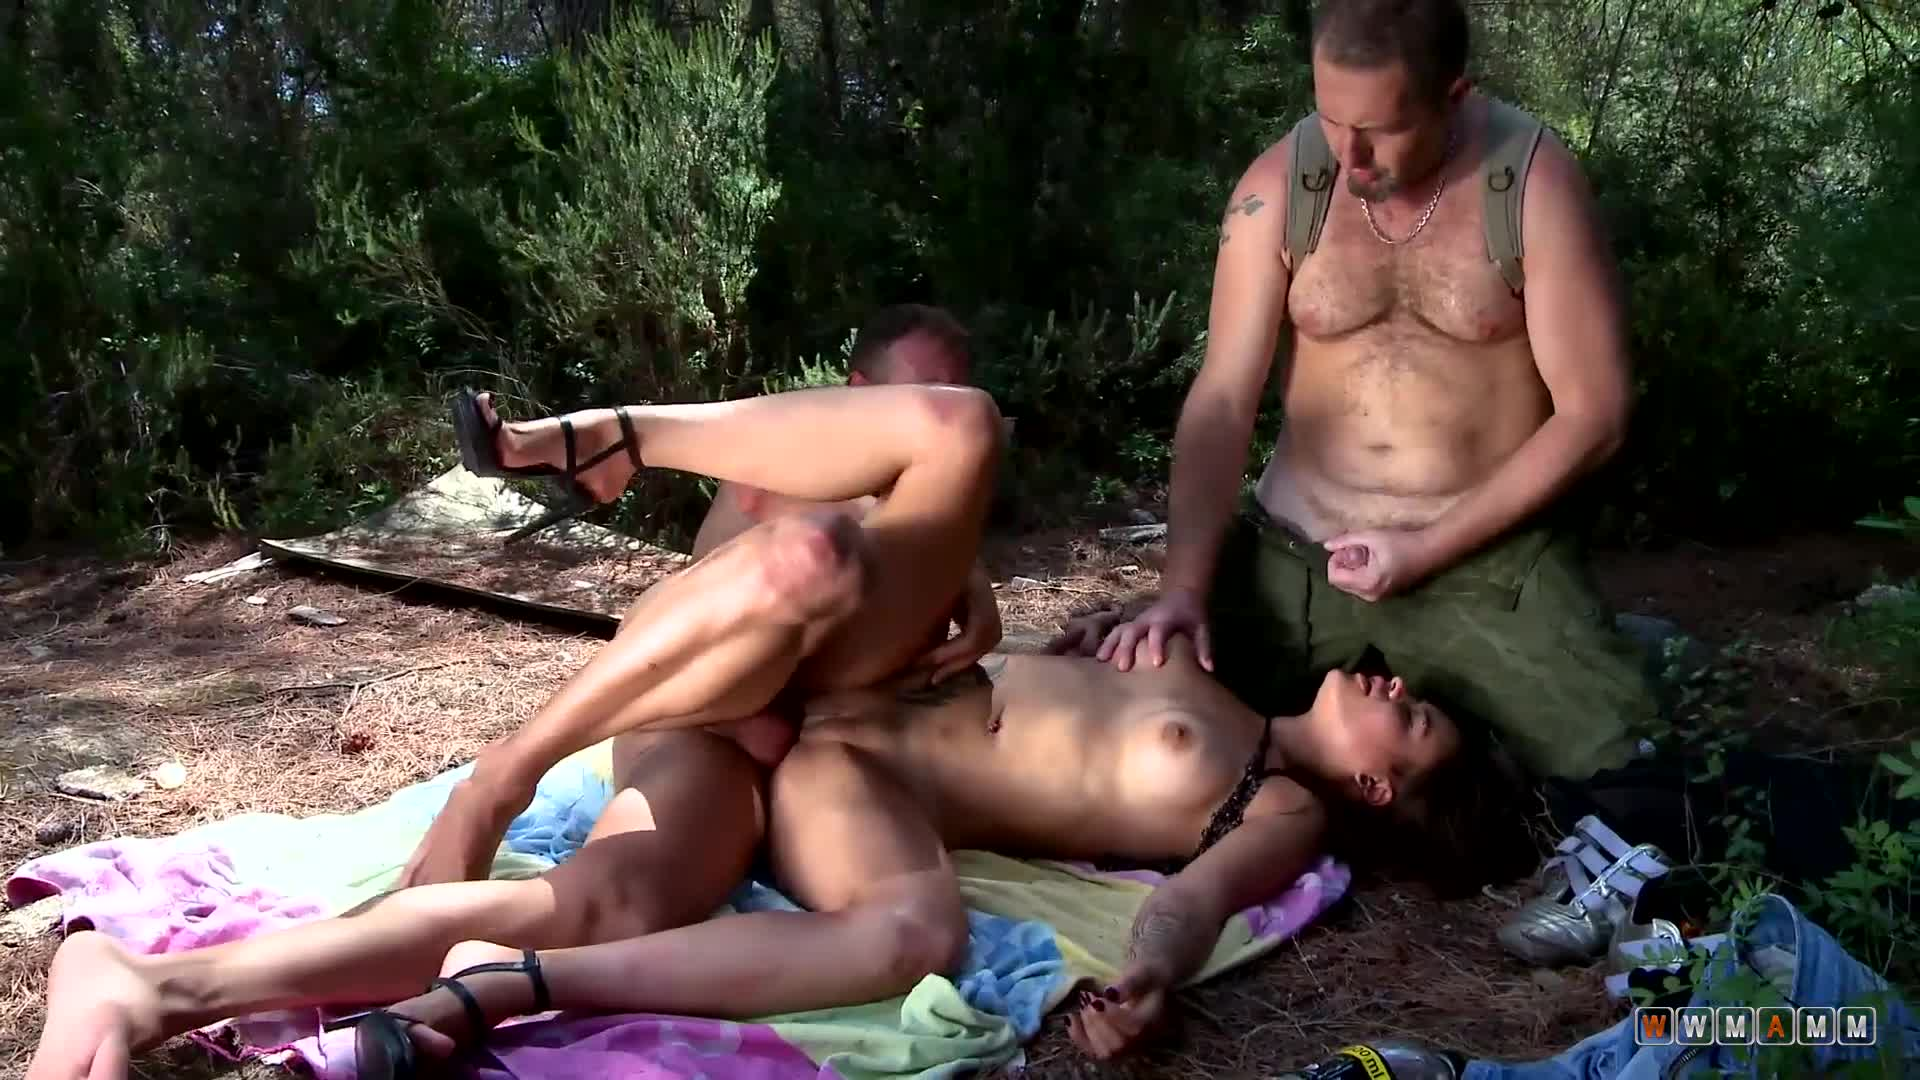 Tattooed Alice Axx Ravaged In Forest Fuck Turned Rough Threesome